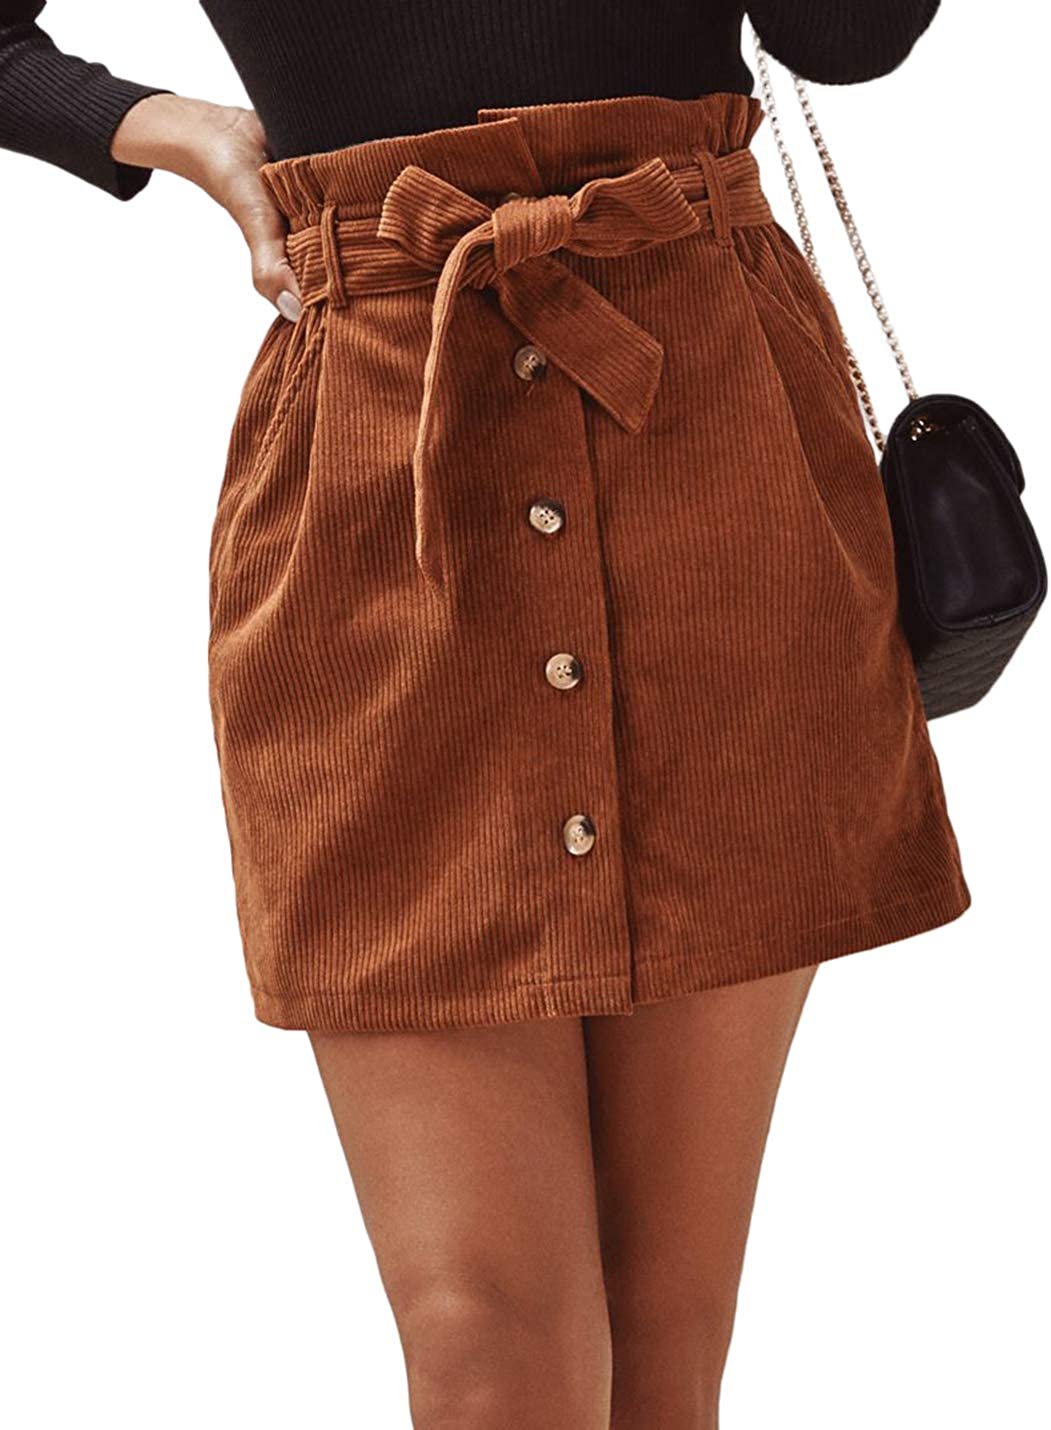 Uaneo Womens Corduroy Casual Paperbag Belted High Waist Button Front Mini Skirts